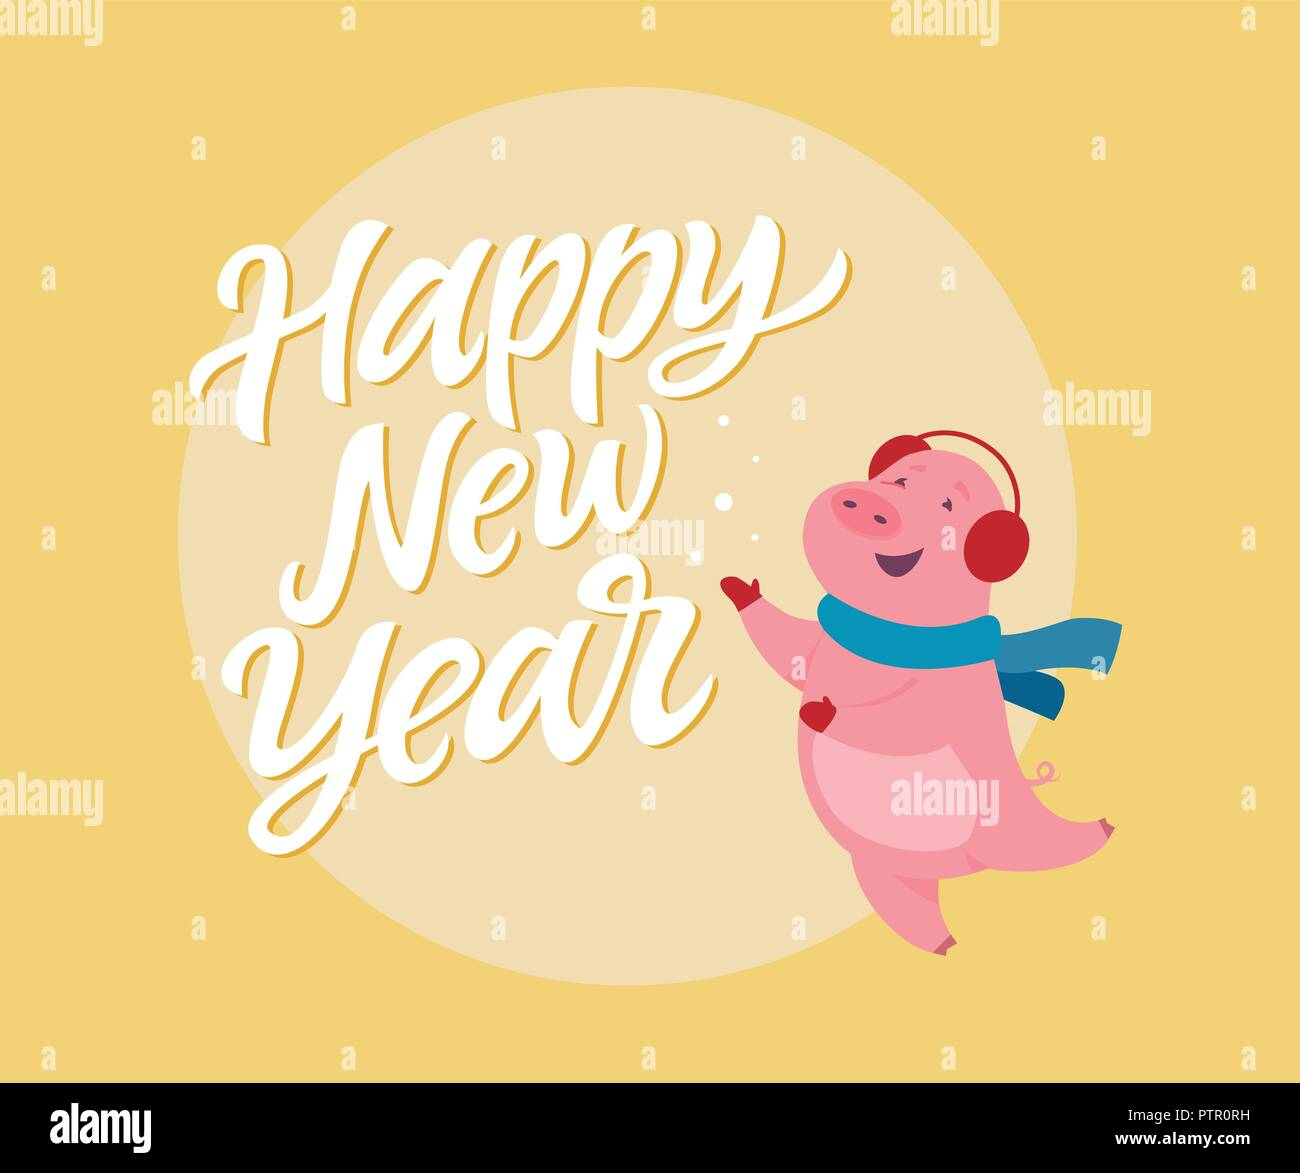 happy new year modern cartoon character illustration on yellow background with calligraphy tex high quality image of a cute jumping pig in ear warm